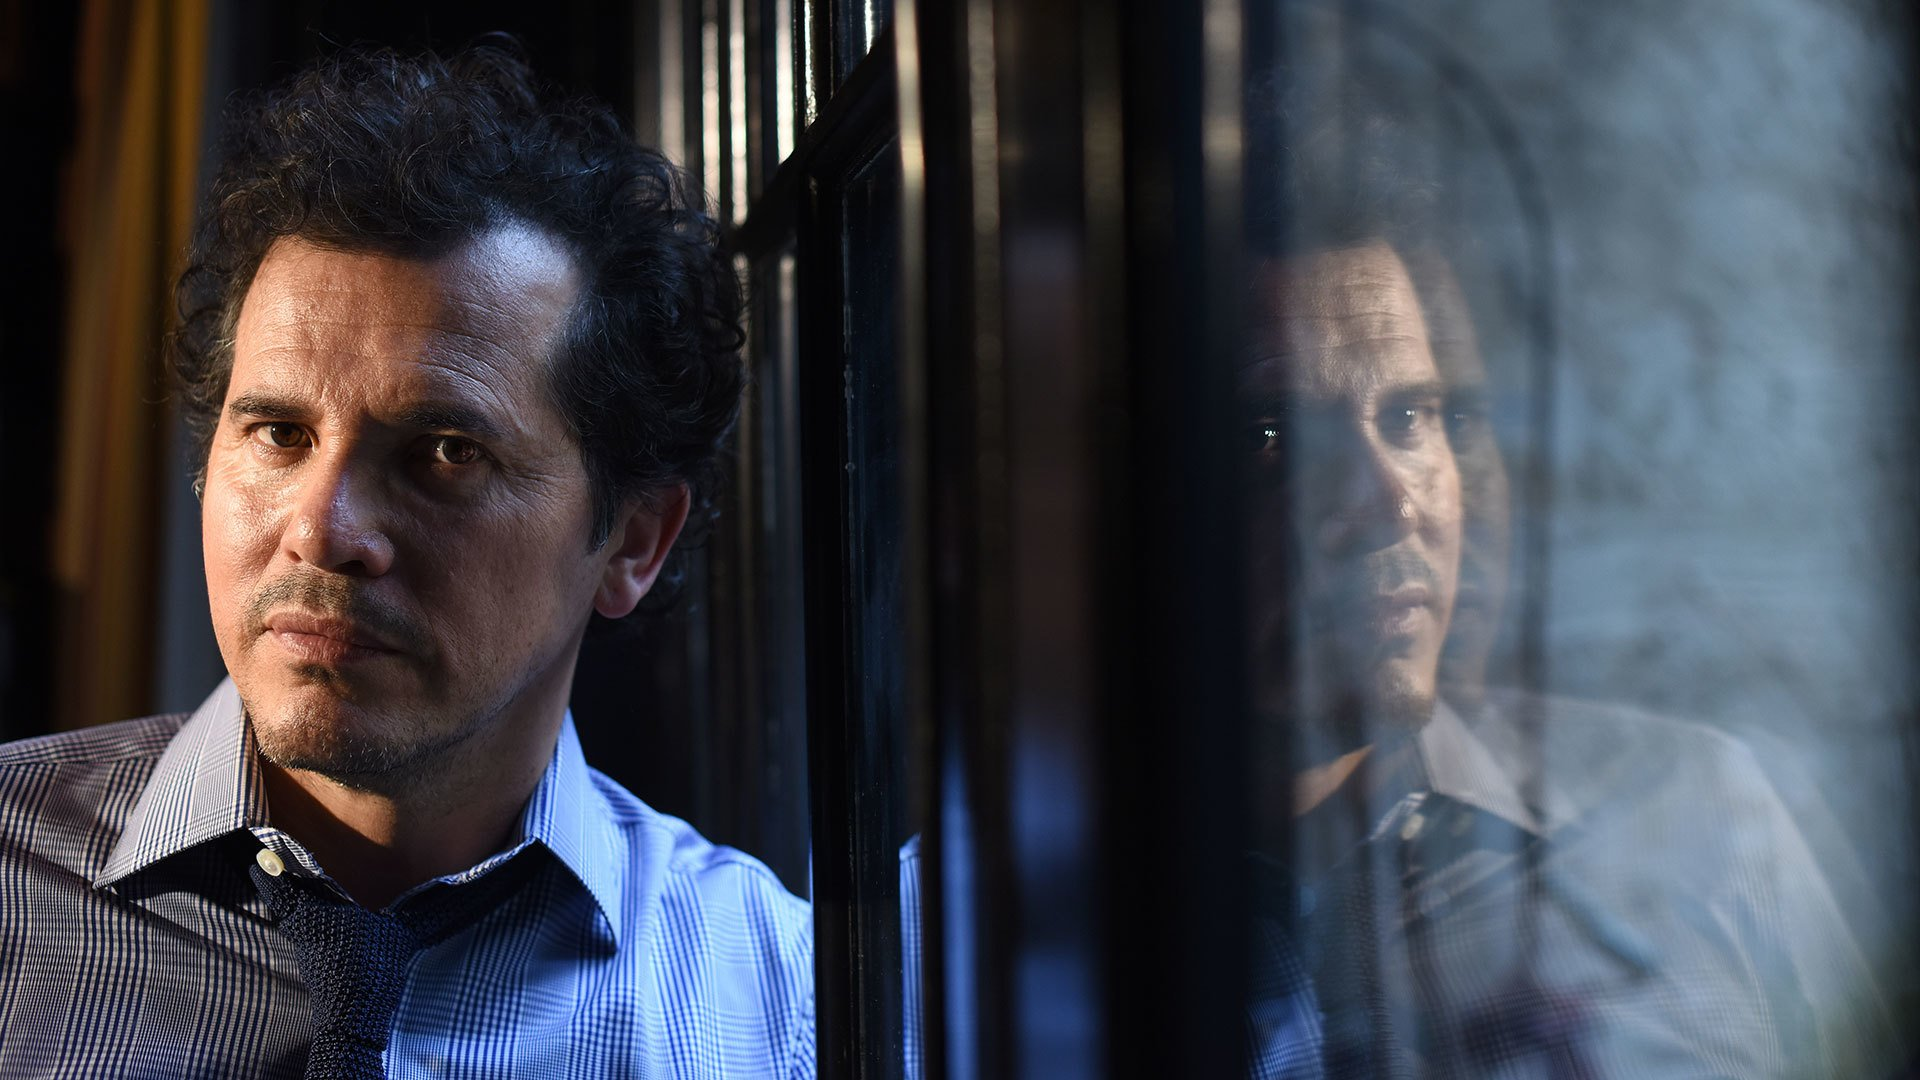 John Leguizamo at window